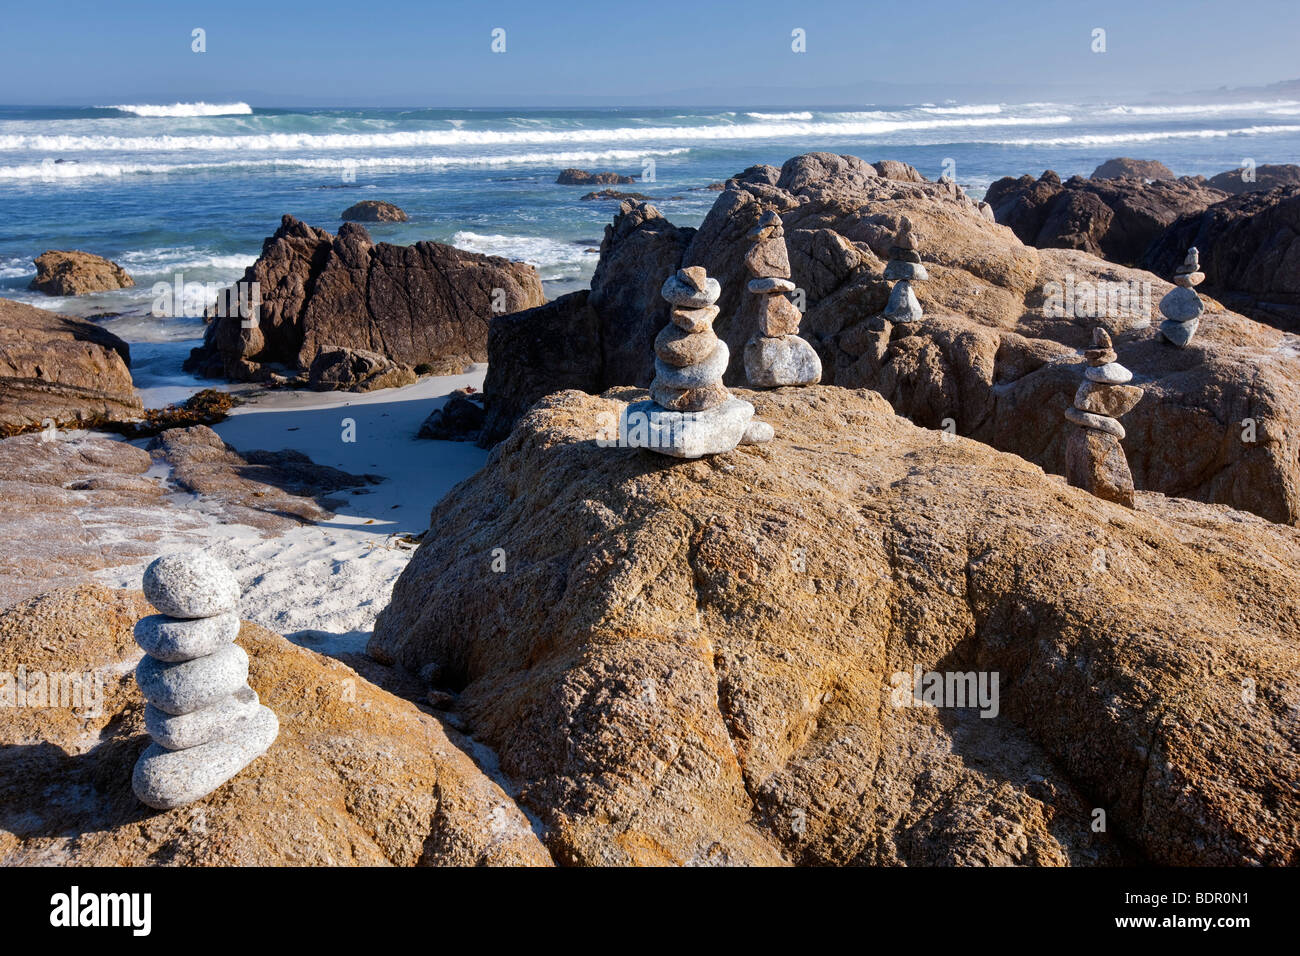 Rock markers and ocean on 17 Mile Drive. Pebble Beach, California - Stock Image